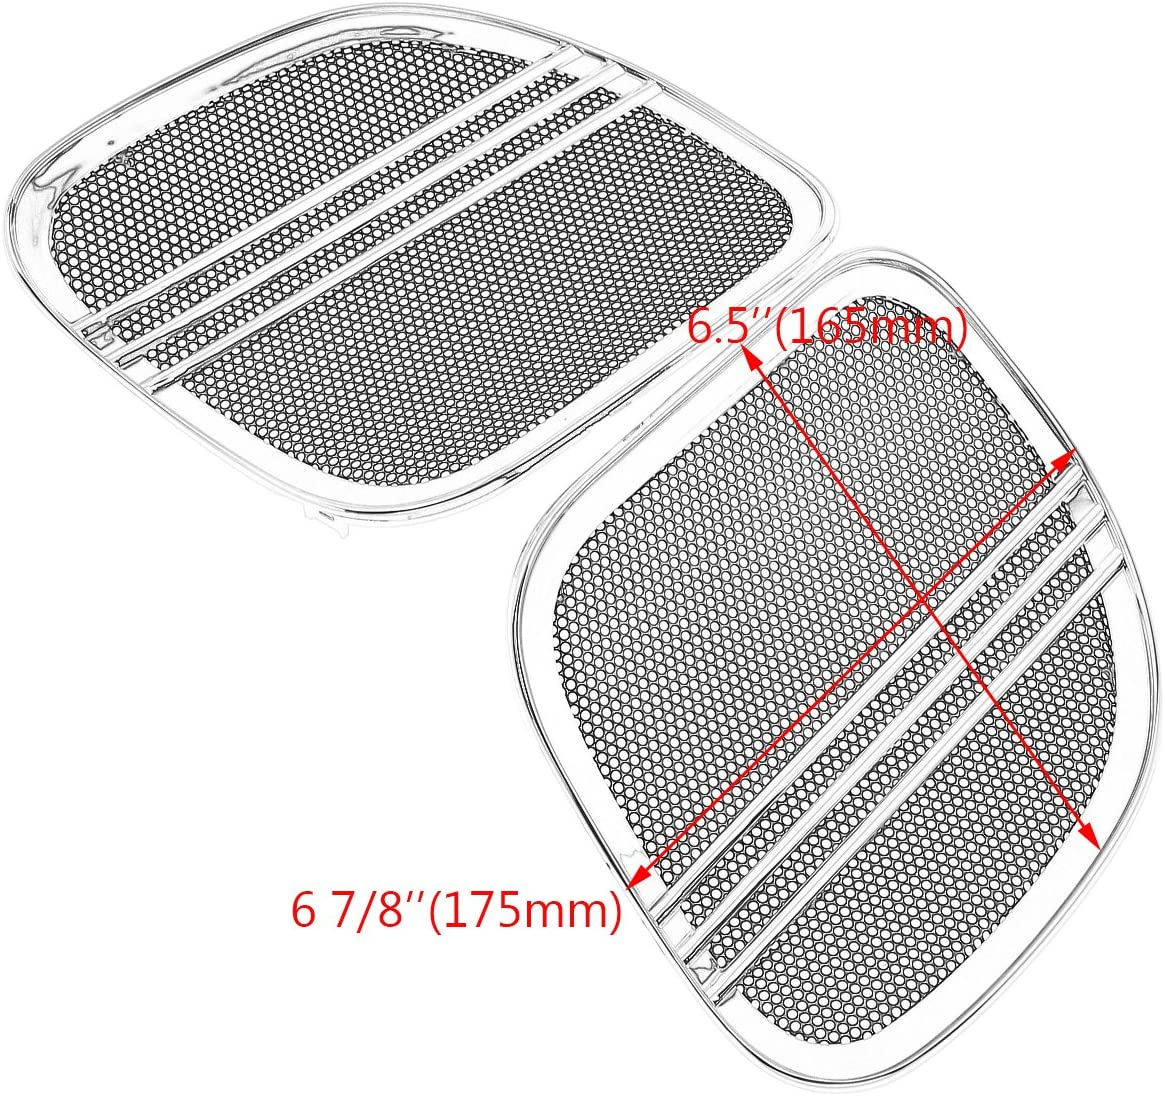 Rebacker Motorbike Tri-Line Speaker Grills Cover Trim Mesh for Harley Road Glide FLTRX 2015 2016 2017 2018,Chrome